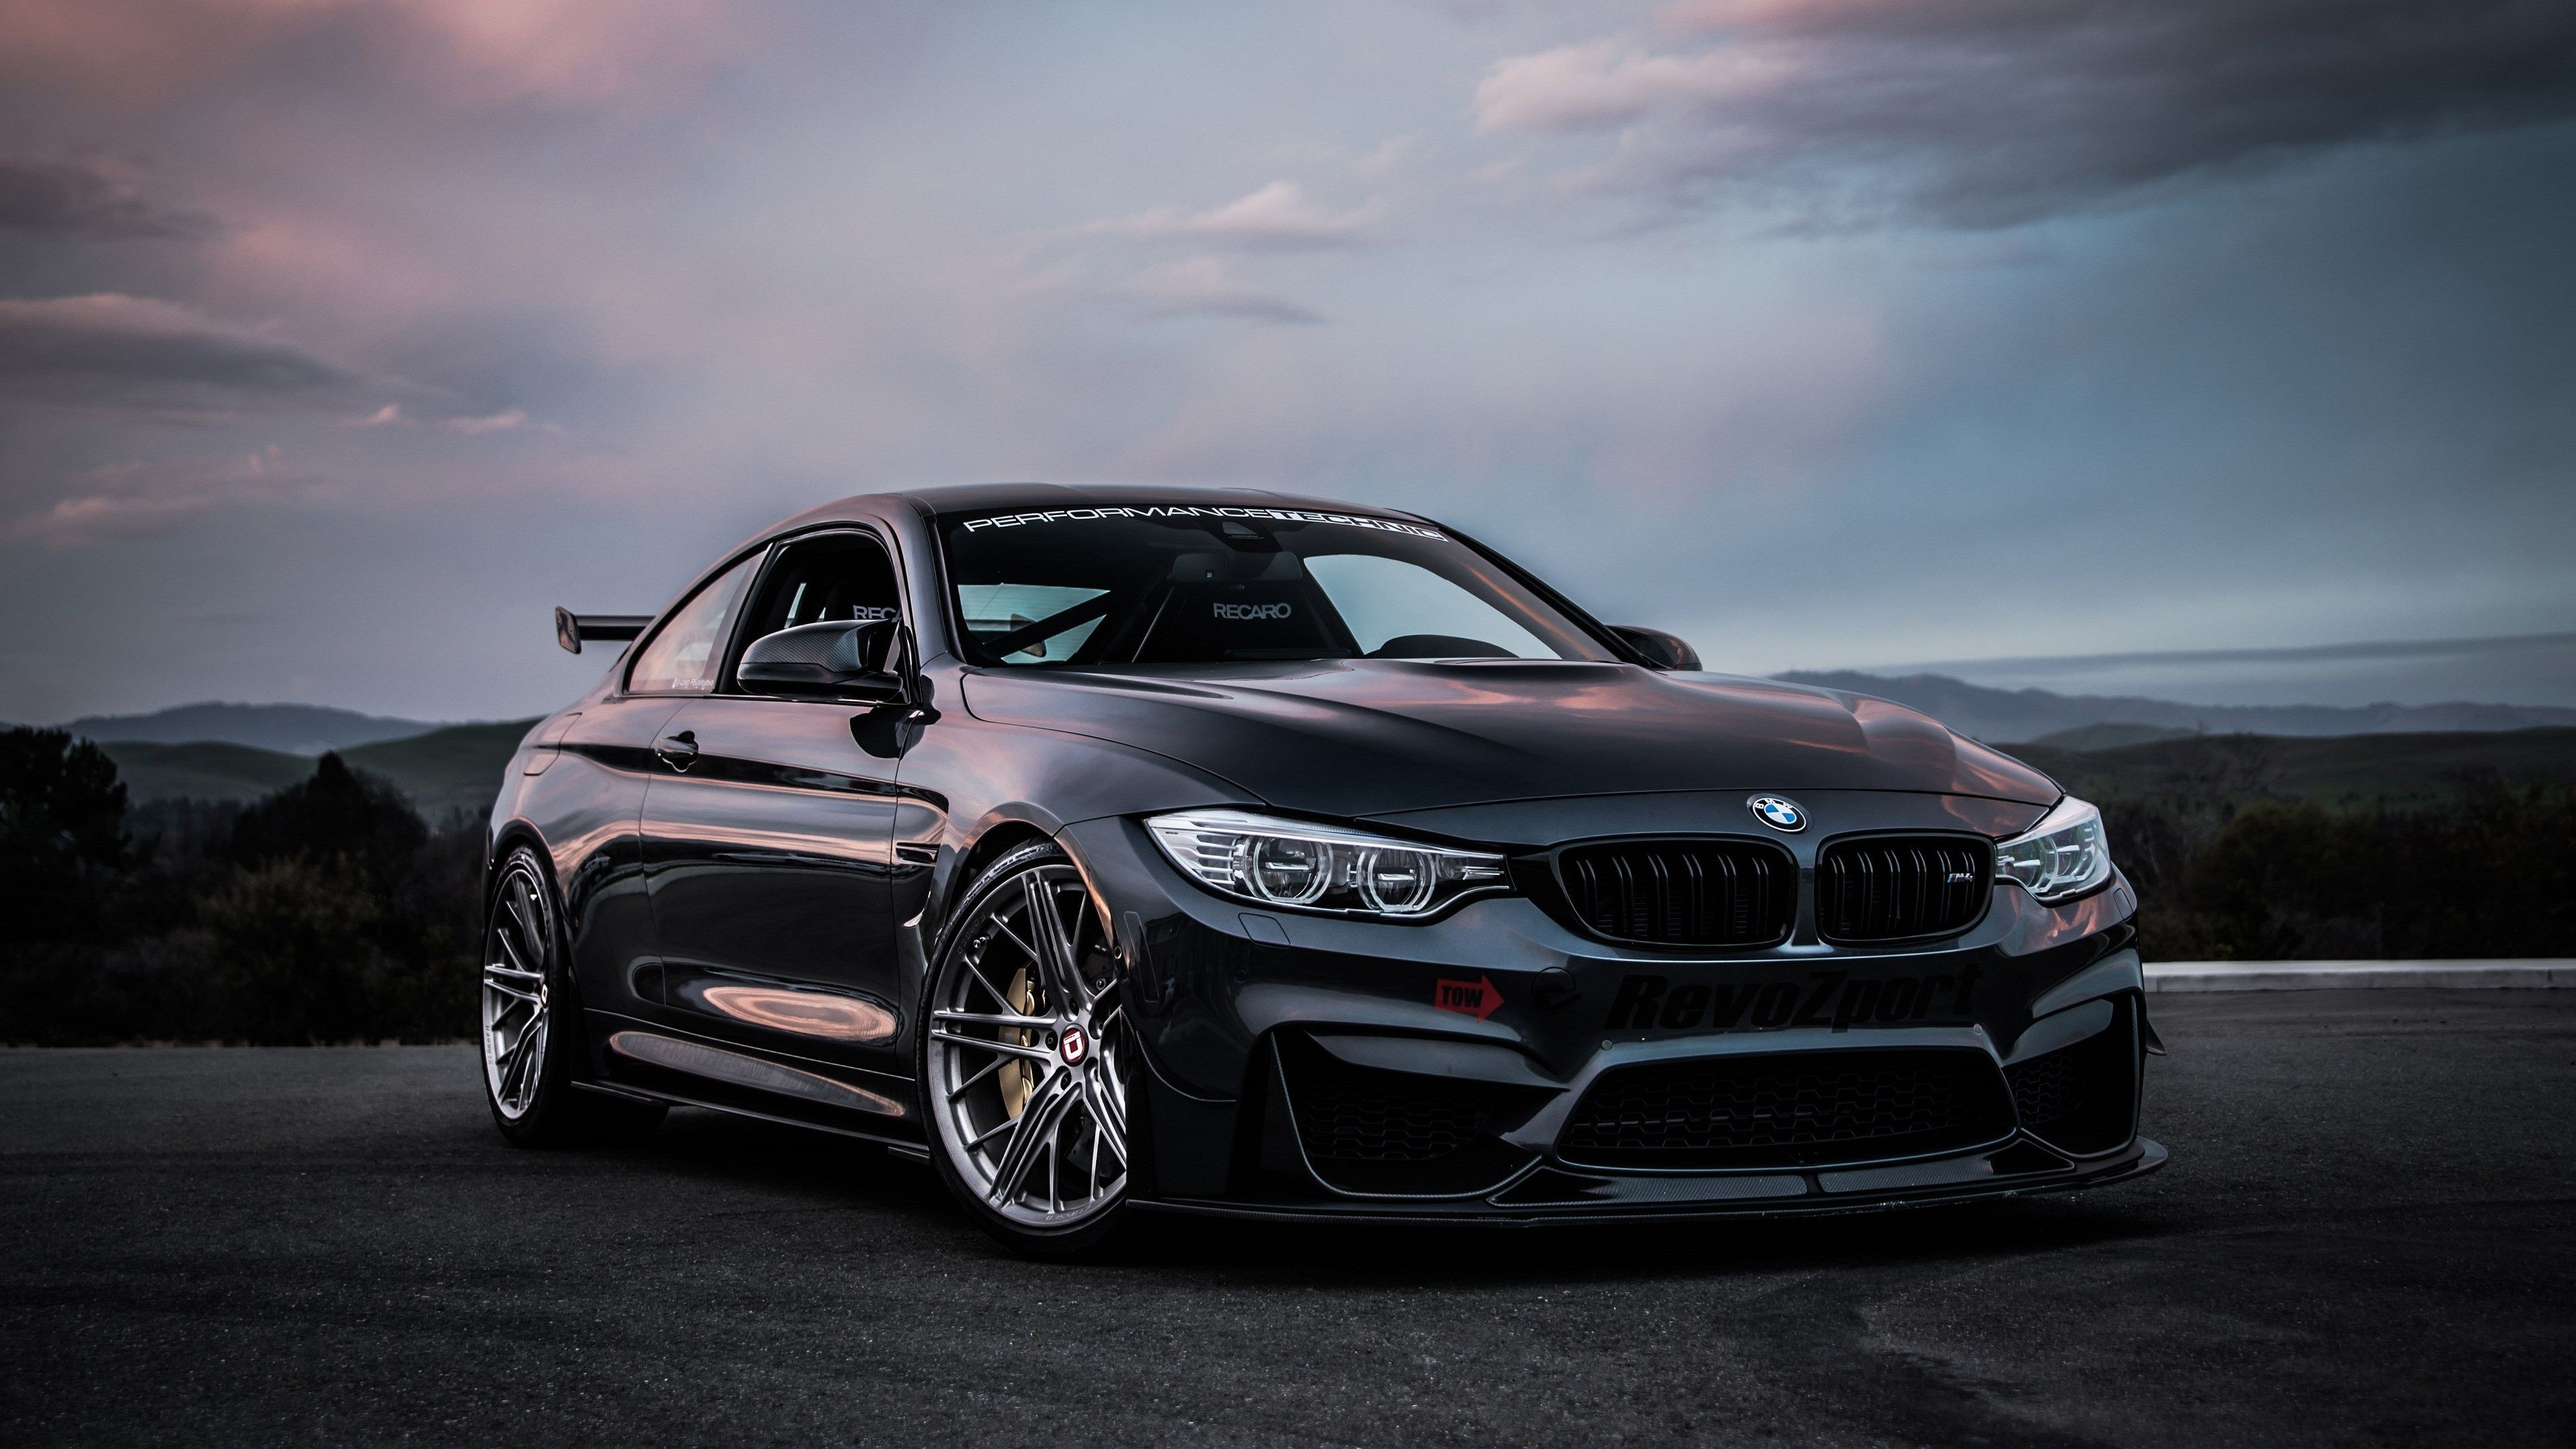 3840x2160 Bmw M4 4k Hd Wallpaper For Pc Download Cars Bmw